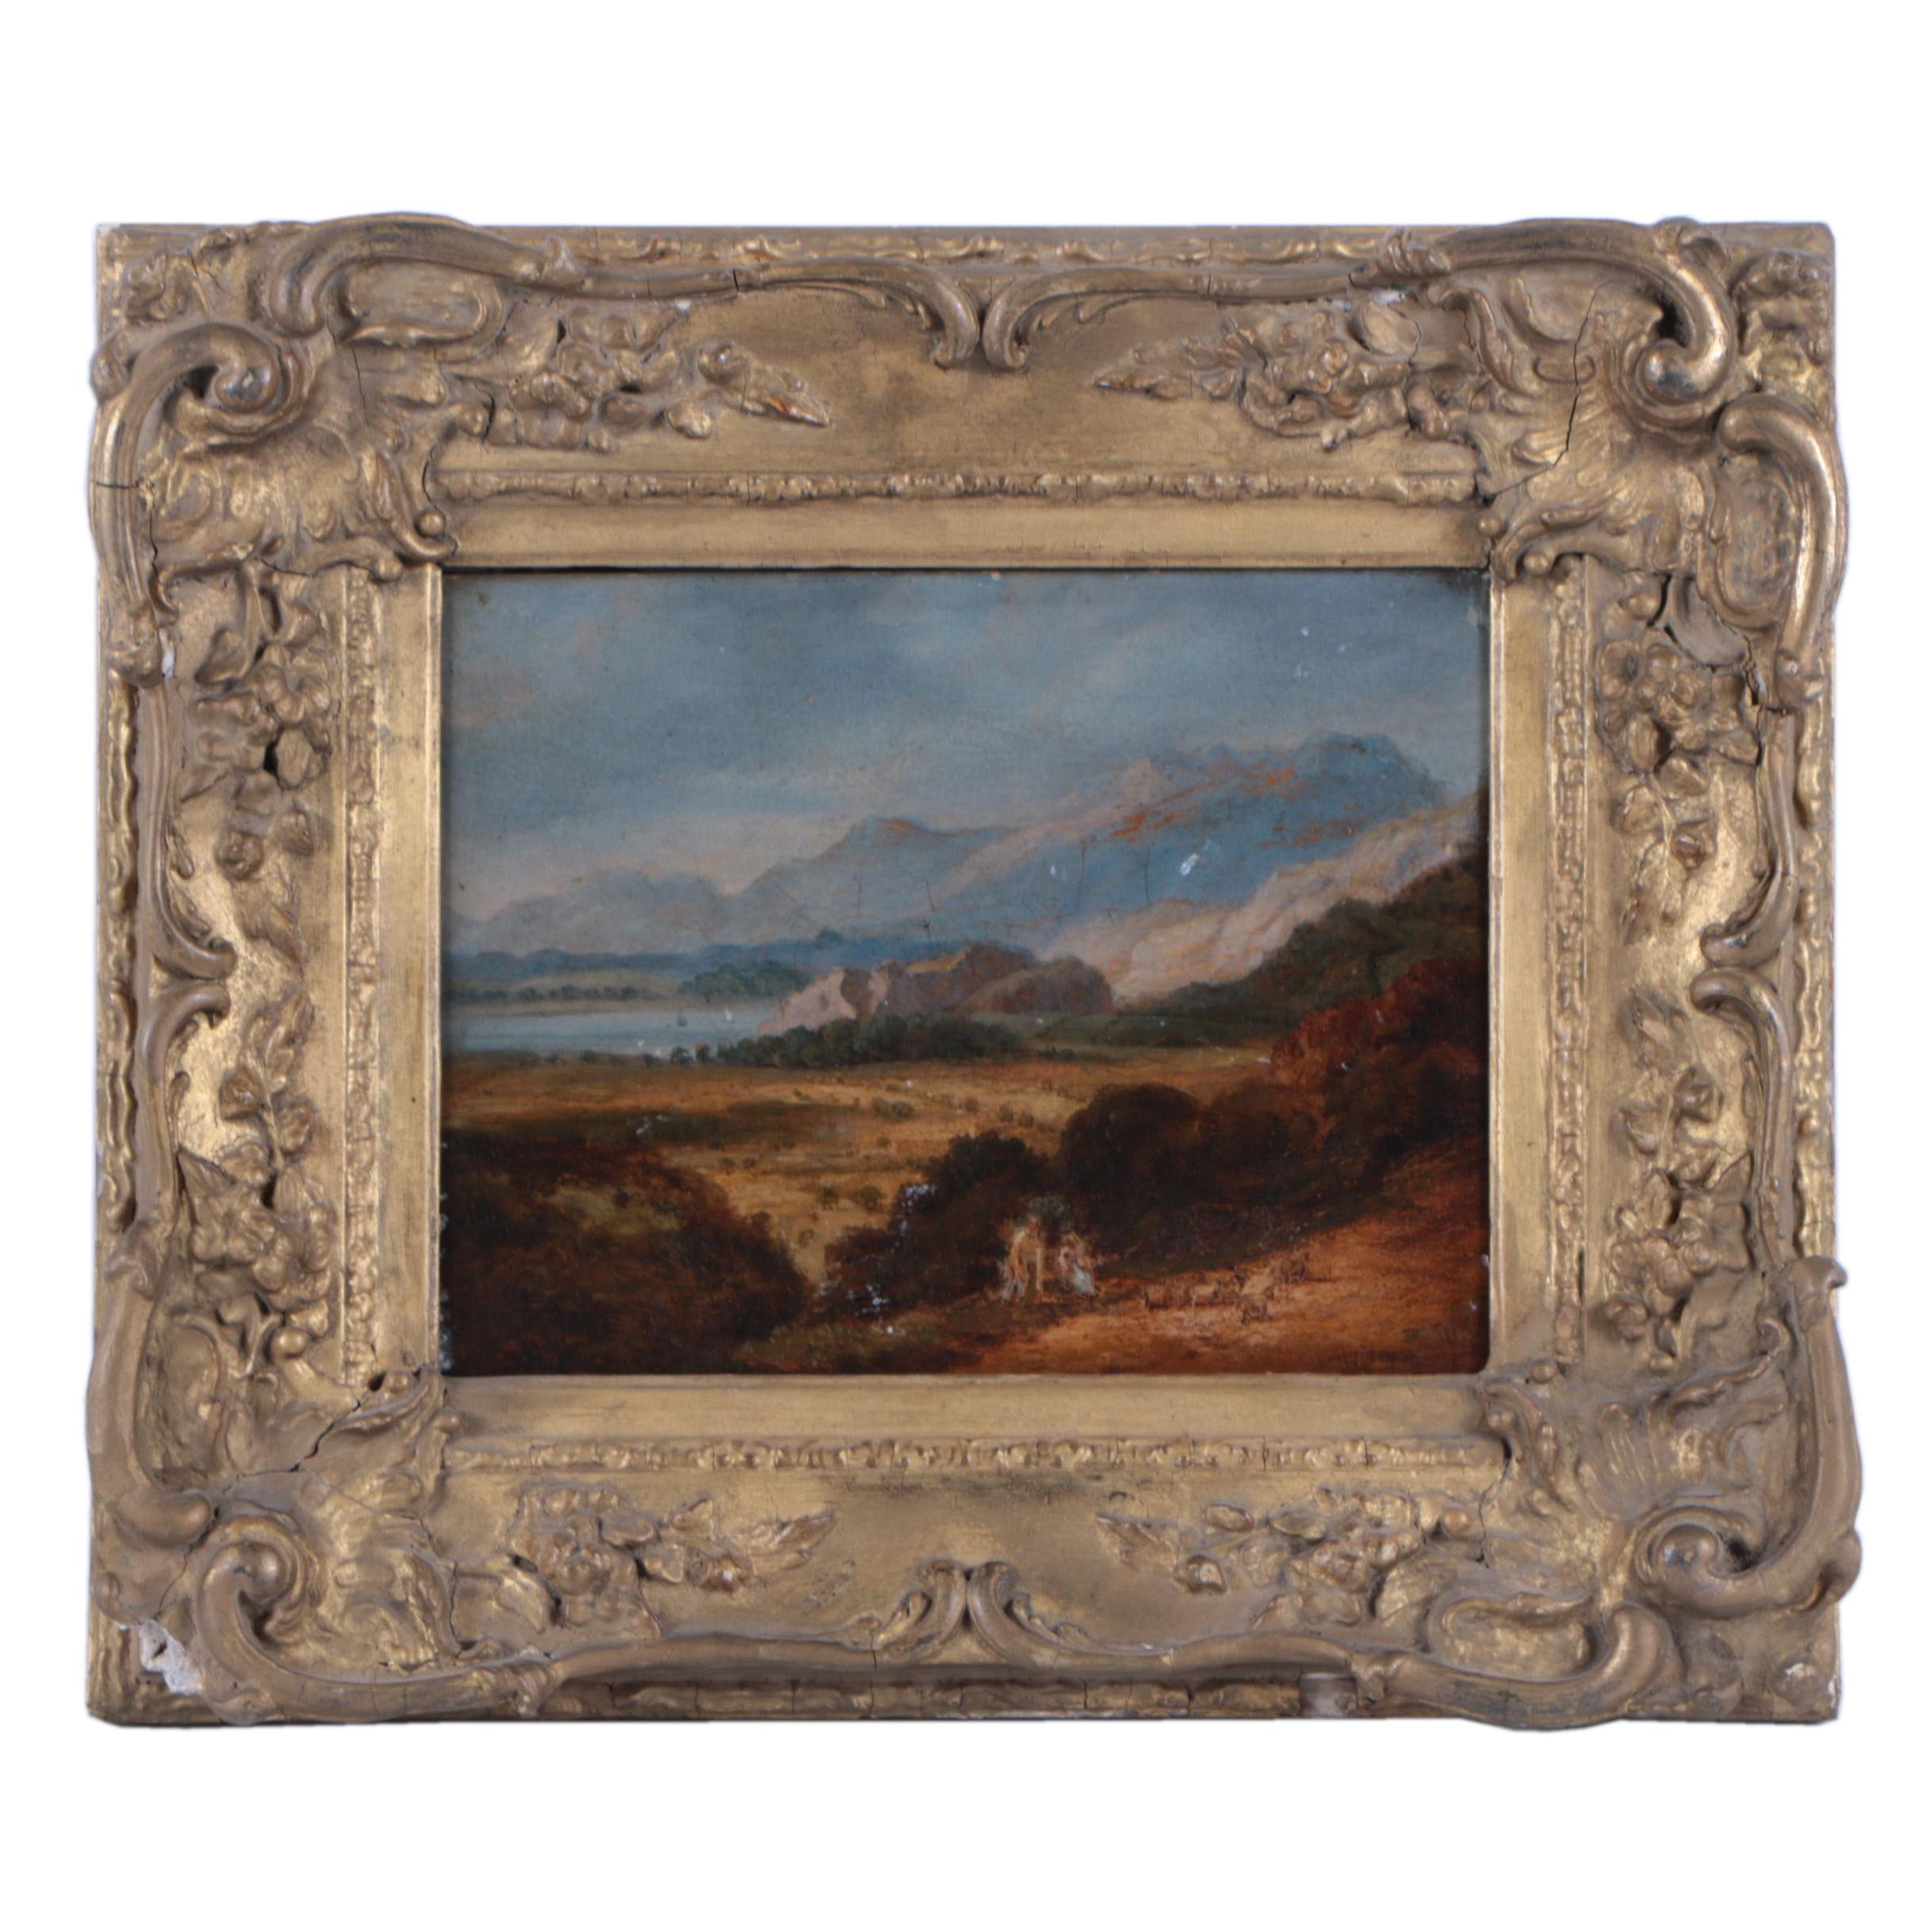 Antique Oil Painting on Board of Figures in a Mountain Landscape